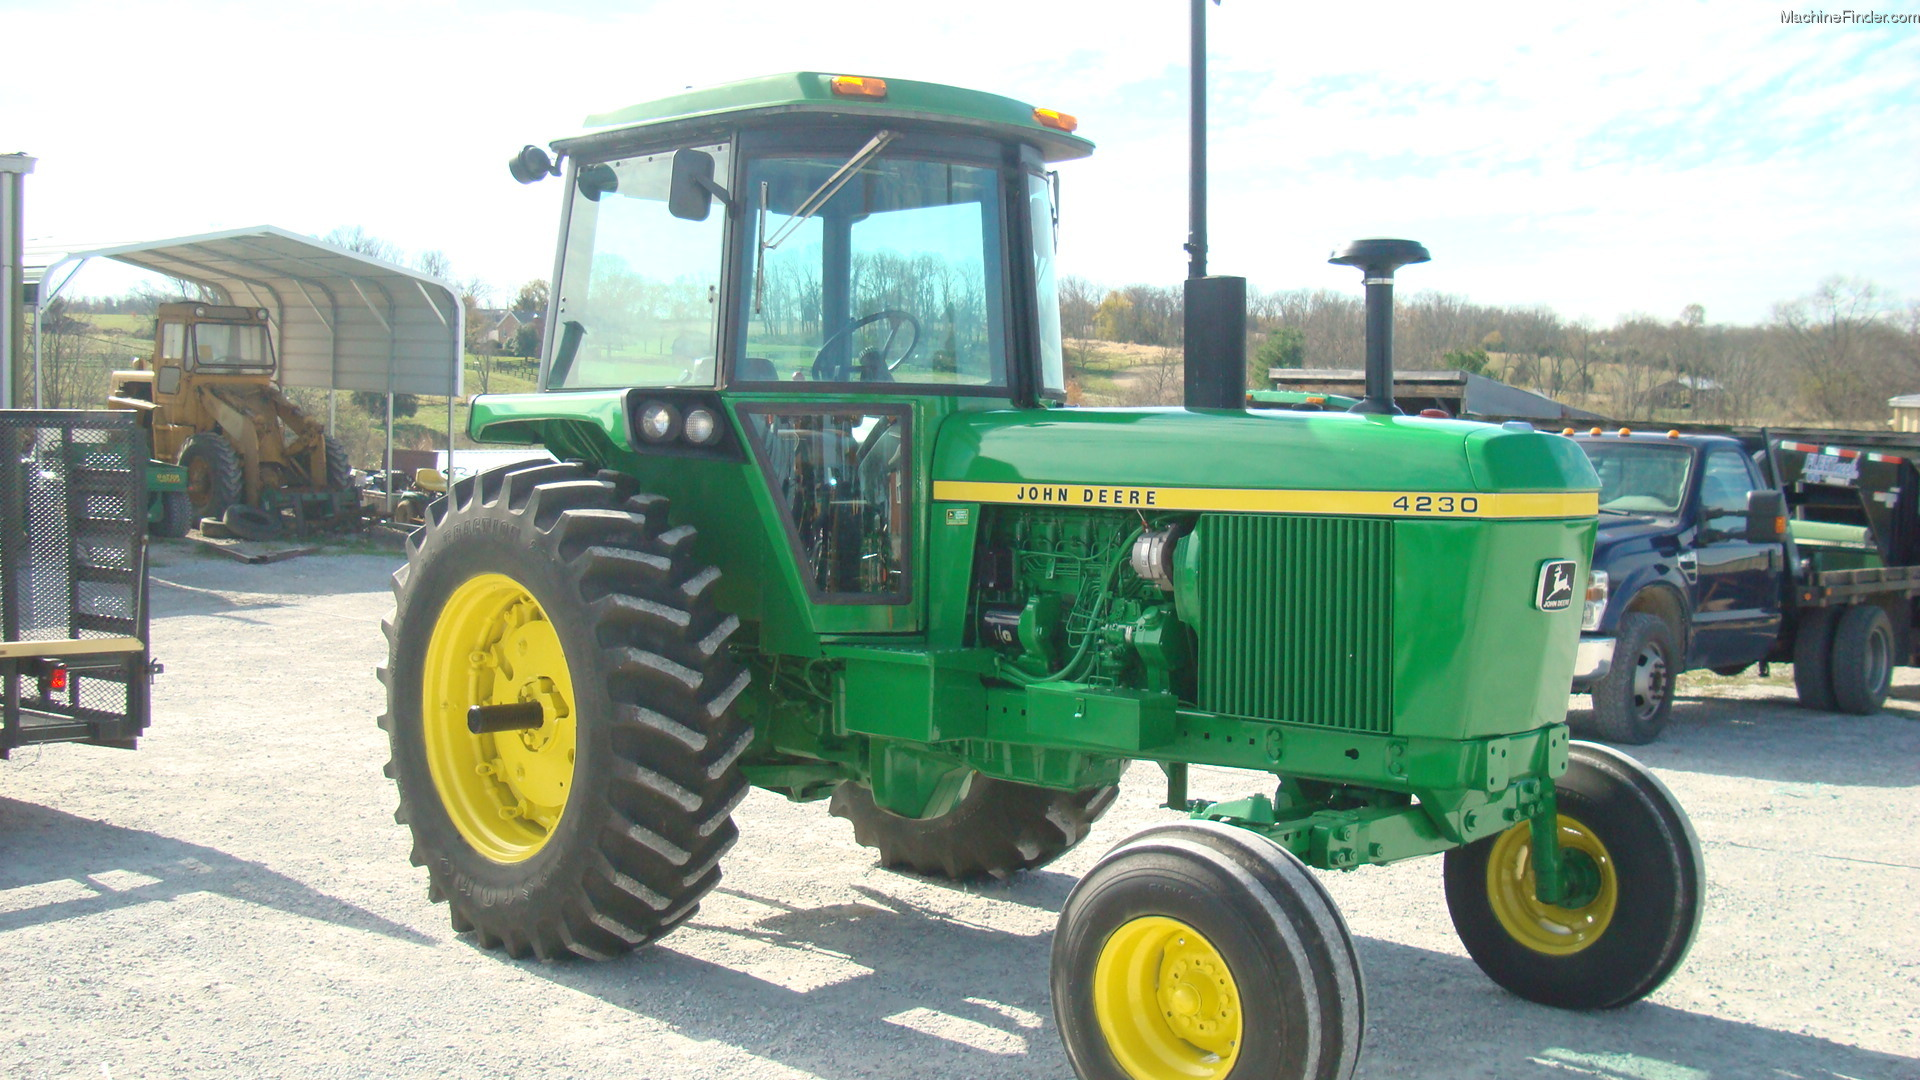 John Deere 4230 Tractor More Tractors. 1973 John Deere 4230 Tractors Row Crop 100hp. John Deere. John Deere 4230 Parts Diagram Air Conditioning At Scoala.co